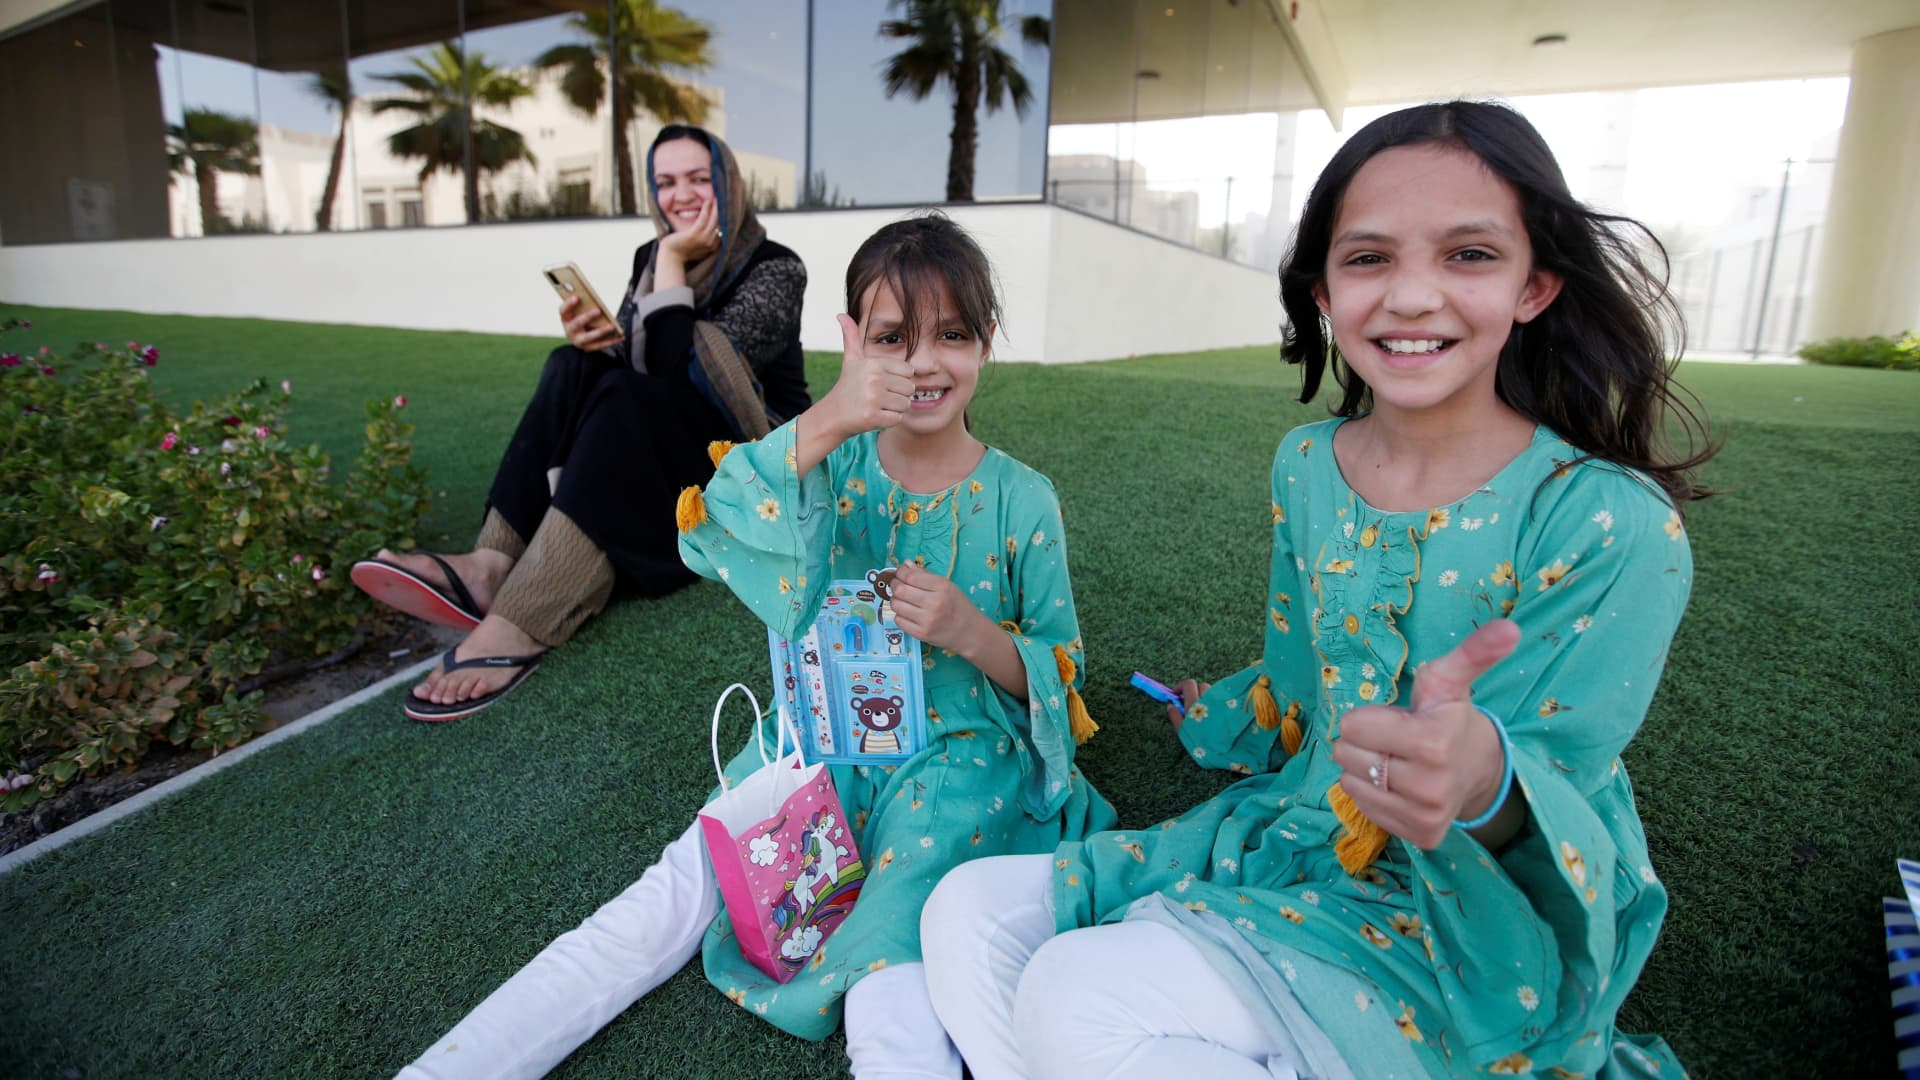 Children of Afghan evacuees give a thumbs-up as they play in a park along with their mother at a temporary residence compound in Doha, Qatar, Aug. 27, 2021.